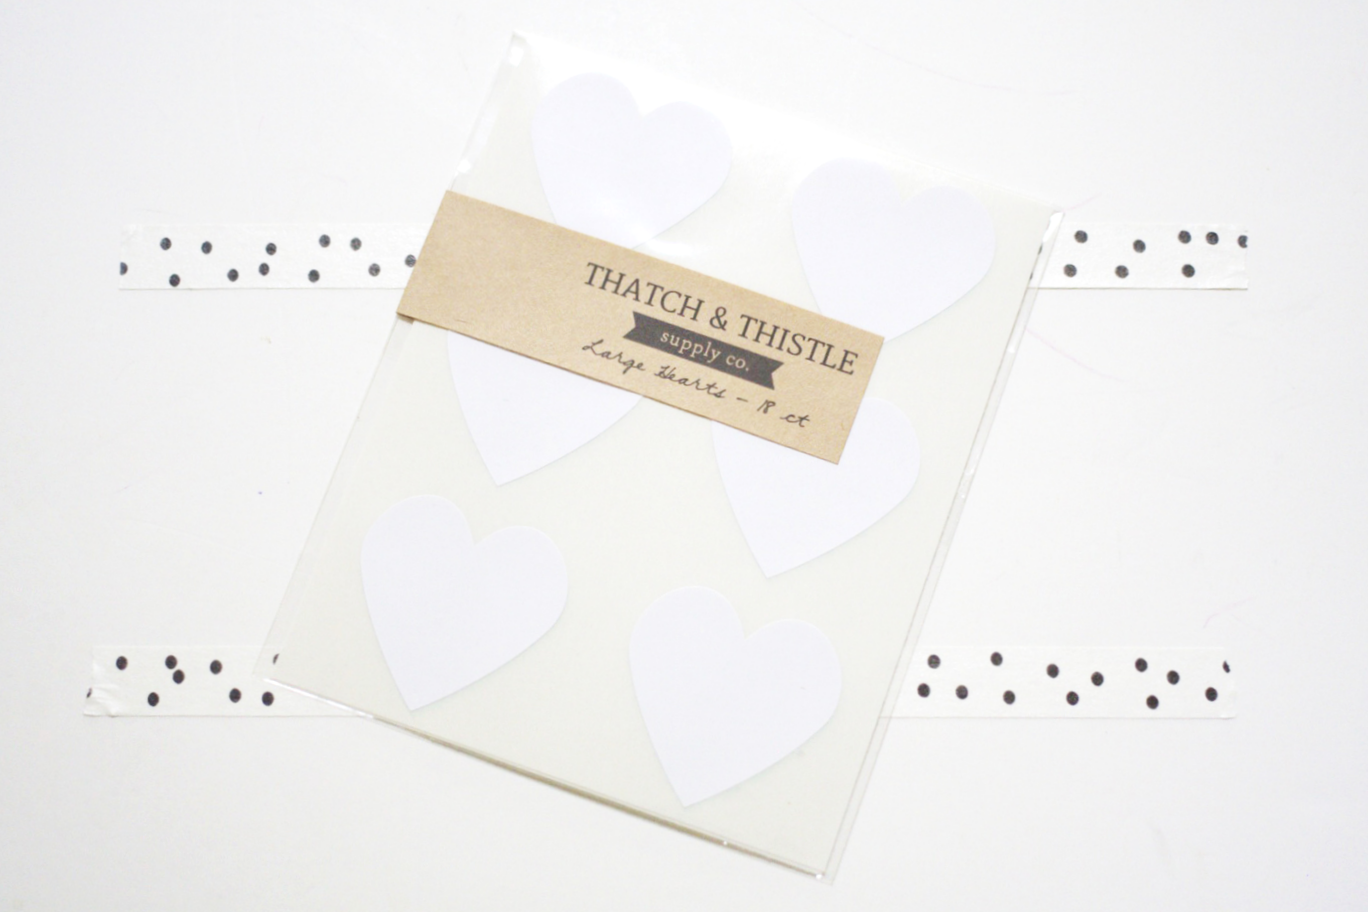 Packaging and party decor shop,  Thatch & Thistle , contributed packs of heart stickers in different colors.